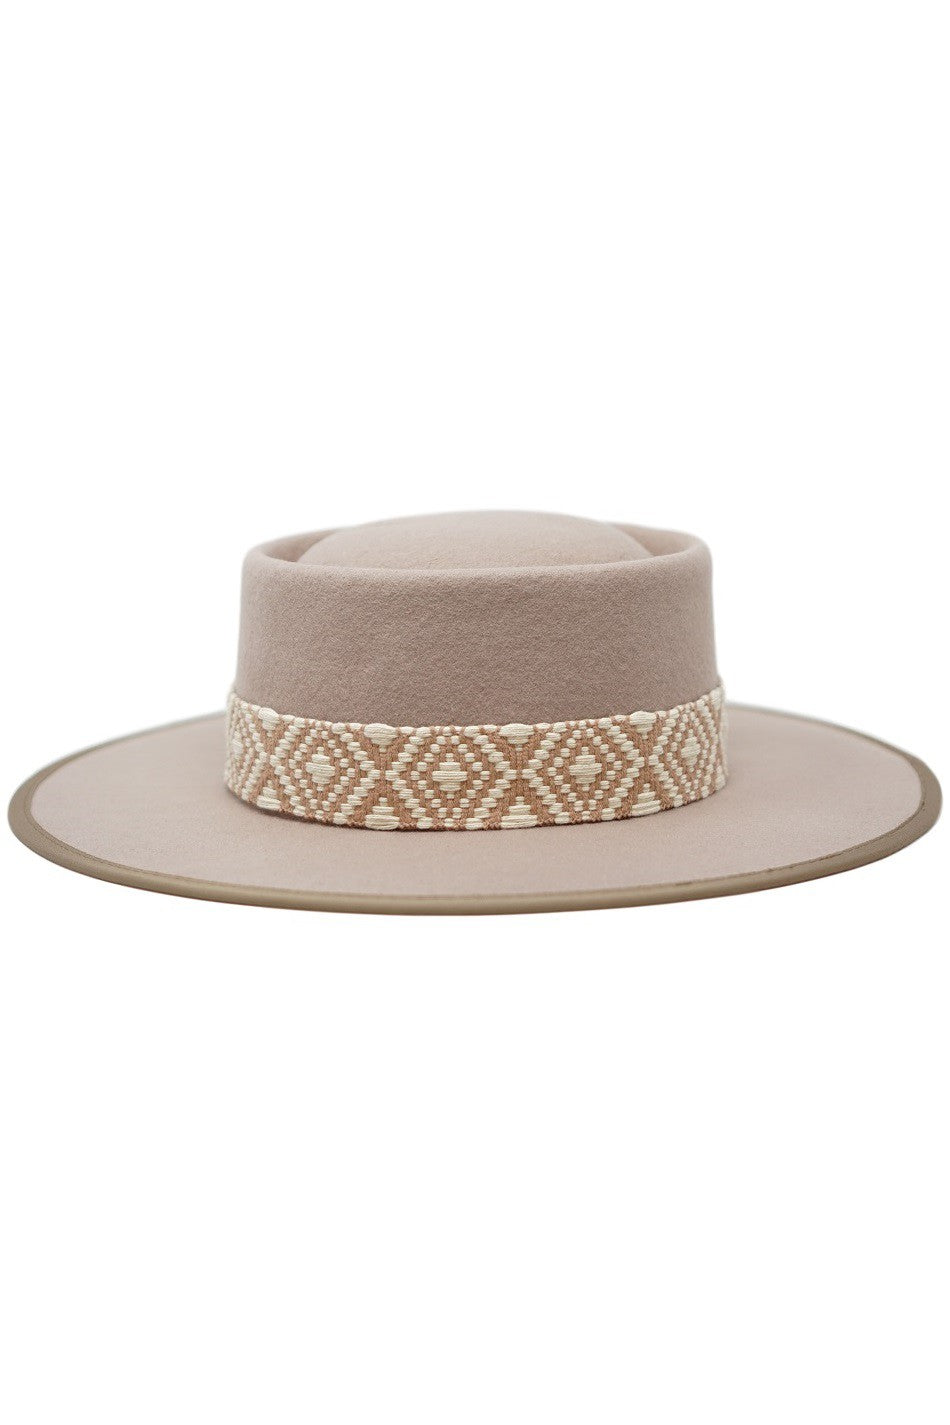 Women's Gambler Farrah Wool Tribal Hat